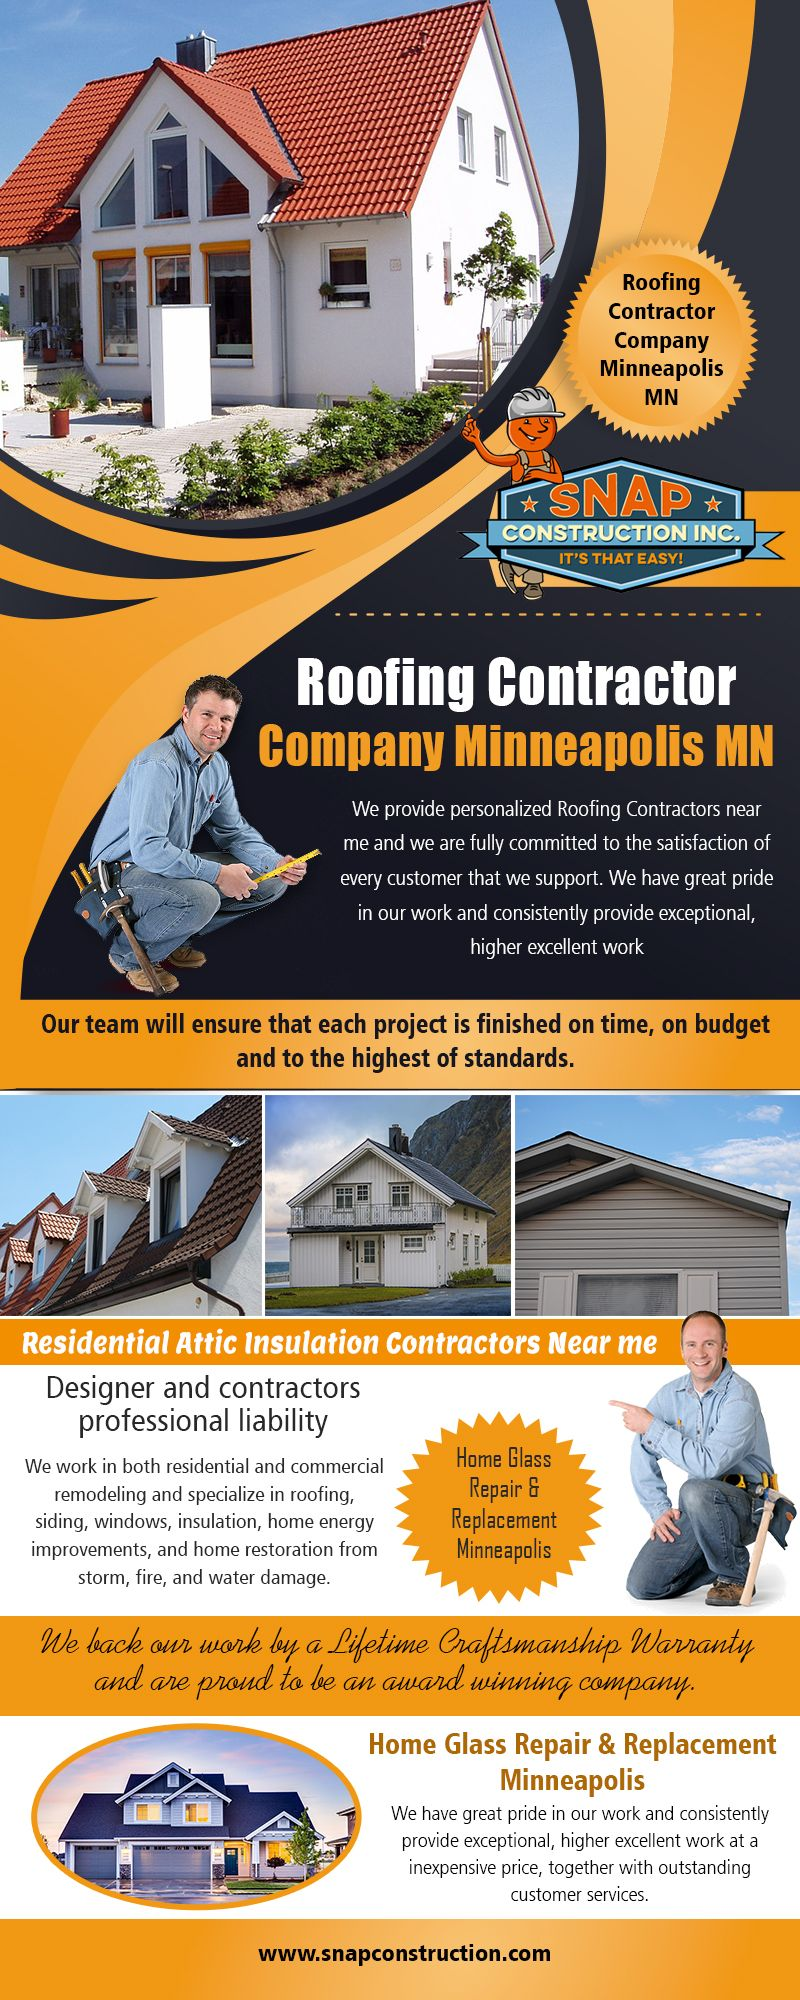 Roofing Contractor Company In Minneapolis Mn Roofing Contractors Commercial Roofing Roofing